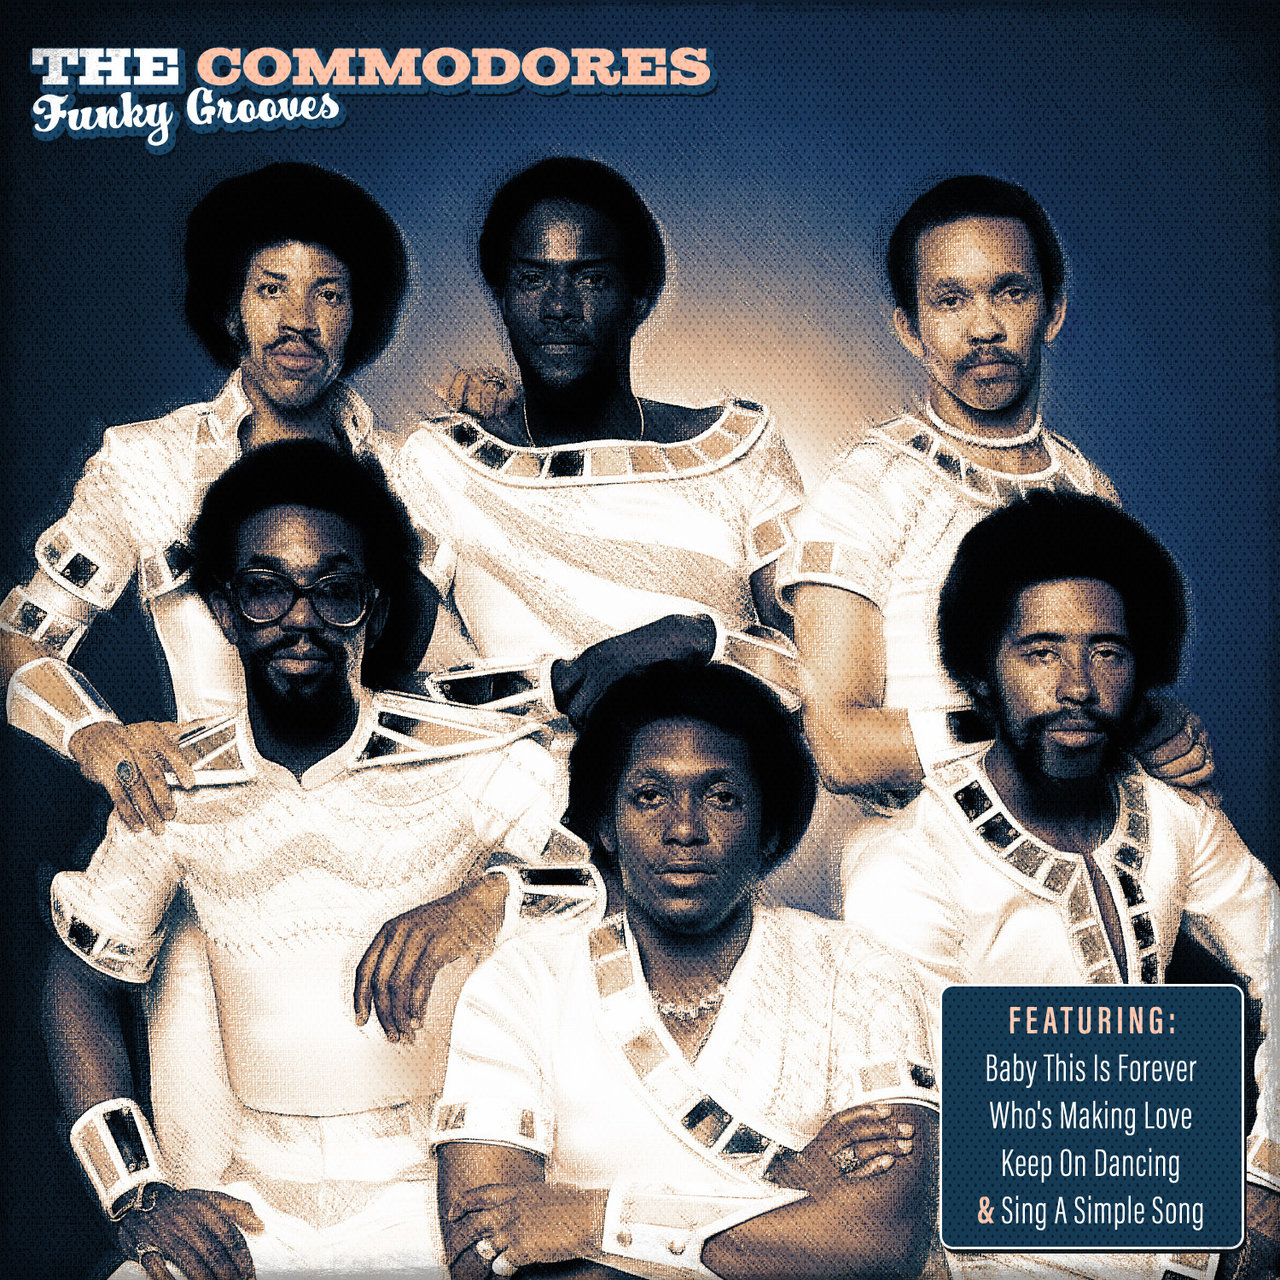 Commodores Ultimate Collection: TIDAL: Listen To The Commodores On TIDAL